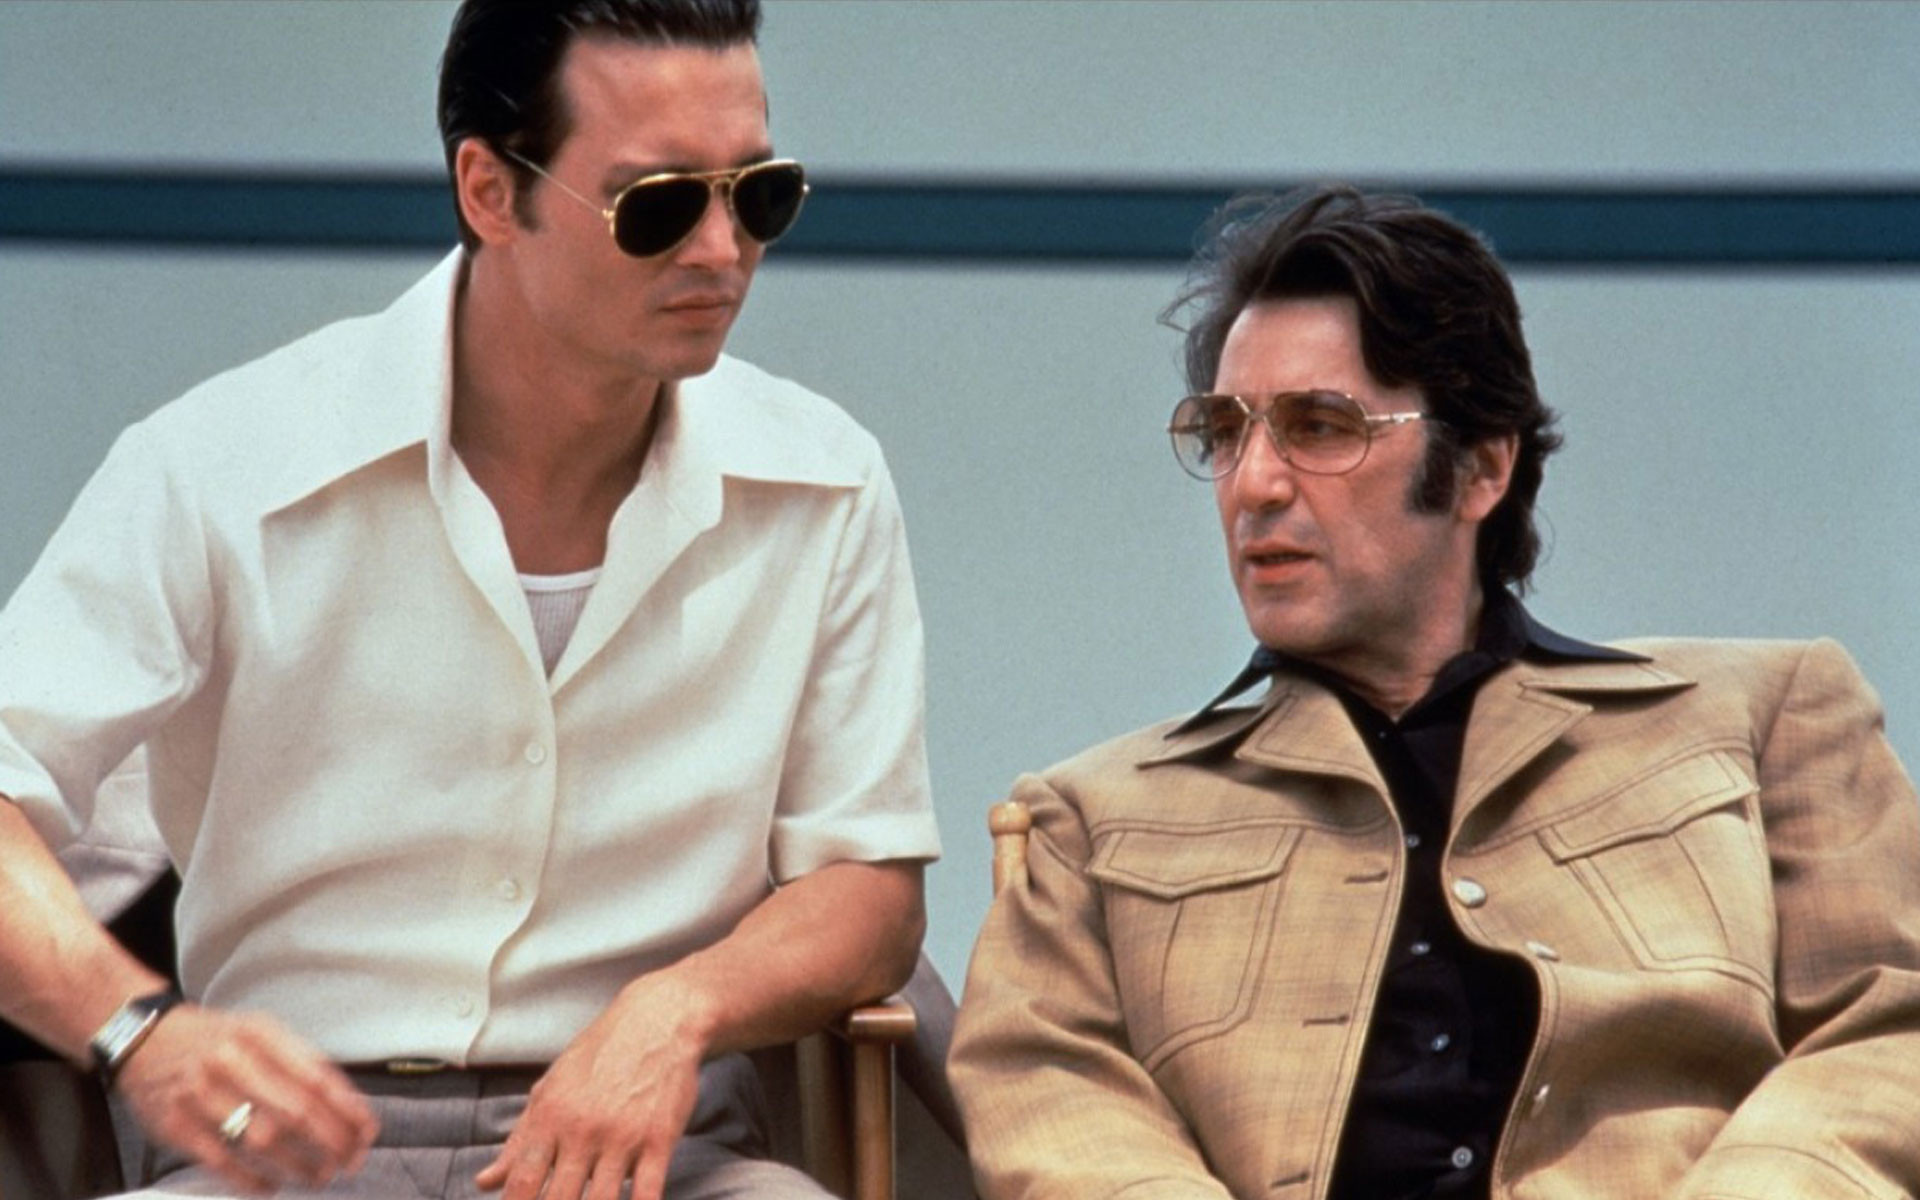 a review of donnie brasco a mobster movie by mike newell Donnie brasco, a sluggish sojourn amid the mafia's bottom-feeders, does a bang-up job of deglamorizing the mob, which, contrary to what civilians might think, ain't all spaghetti sauce, sinatra .